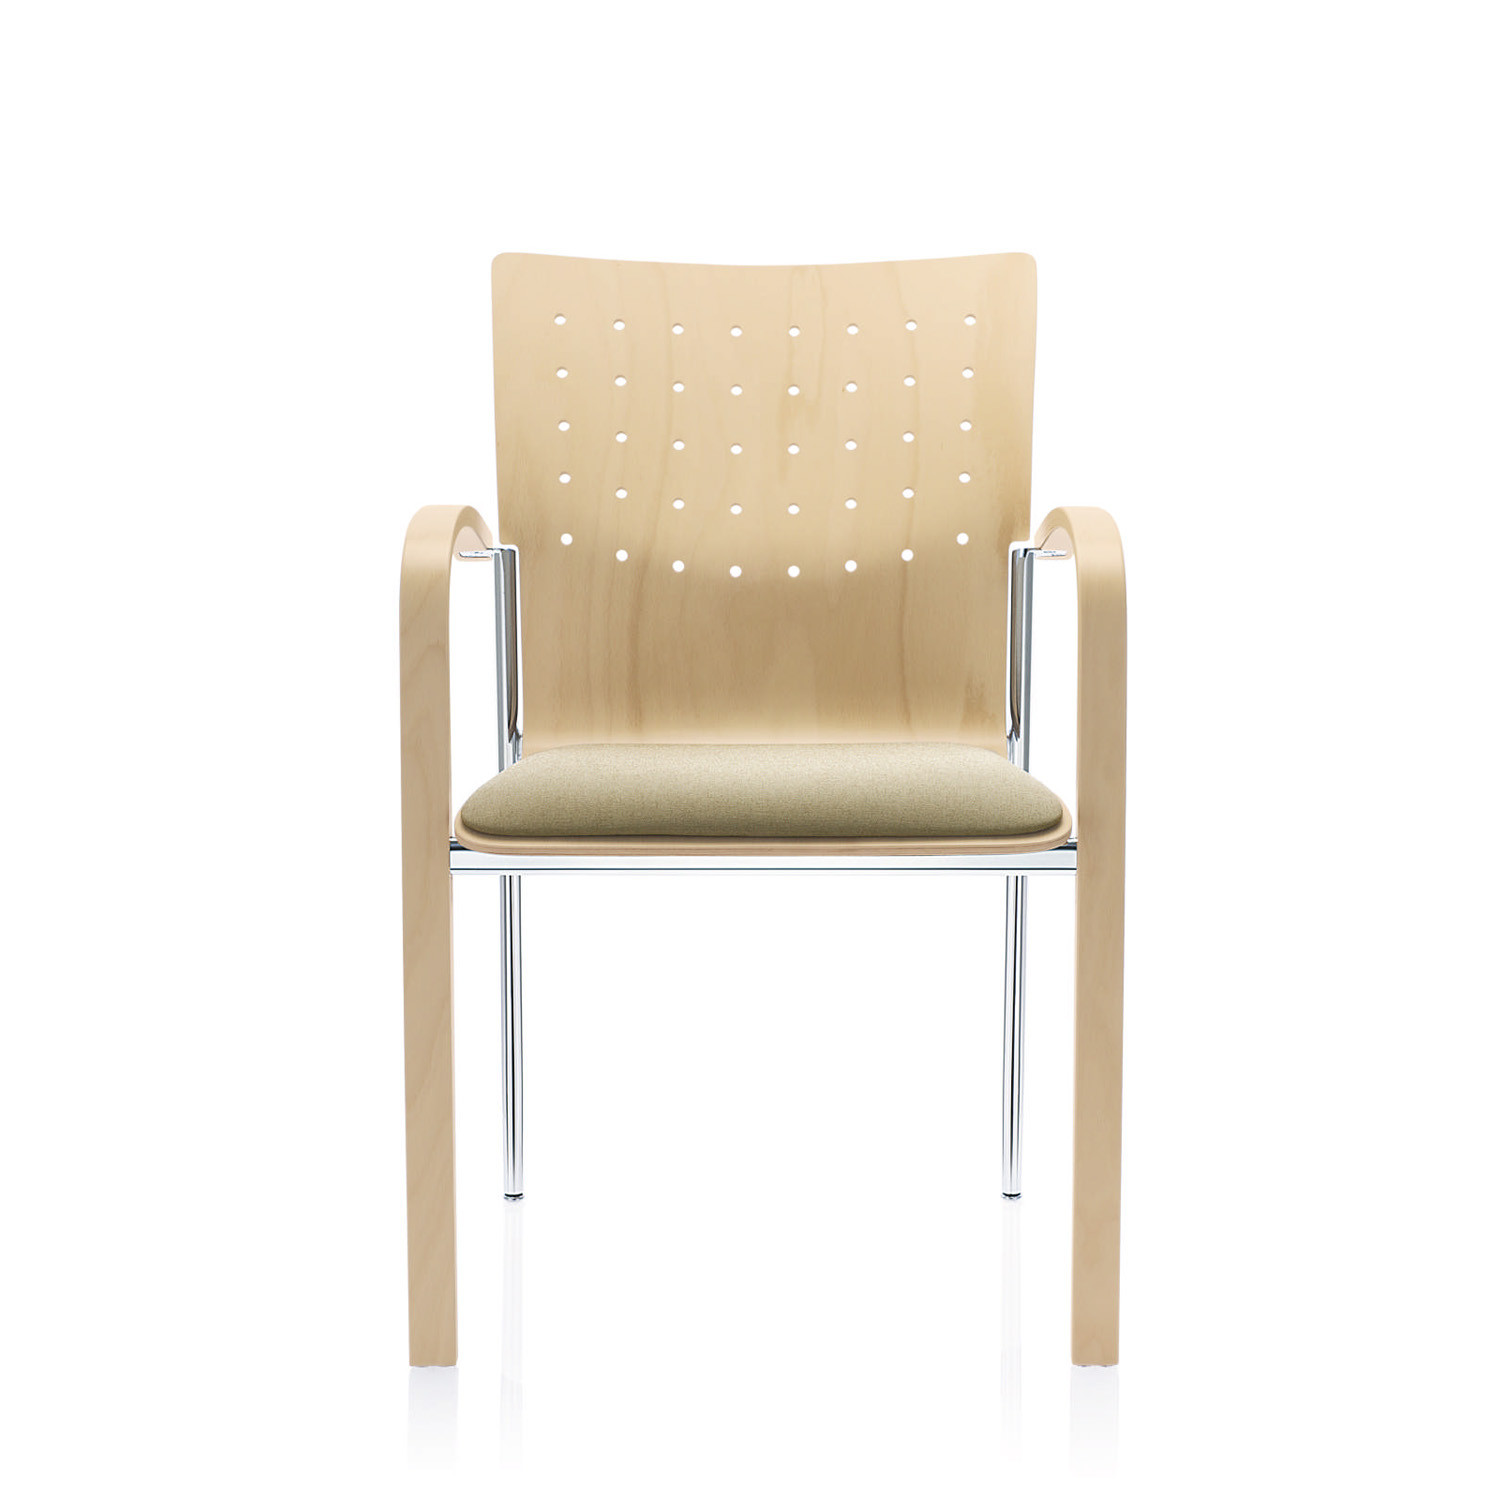 Plaza Classic Chair